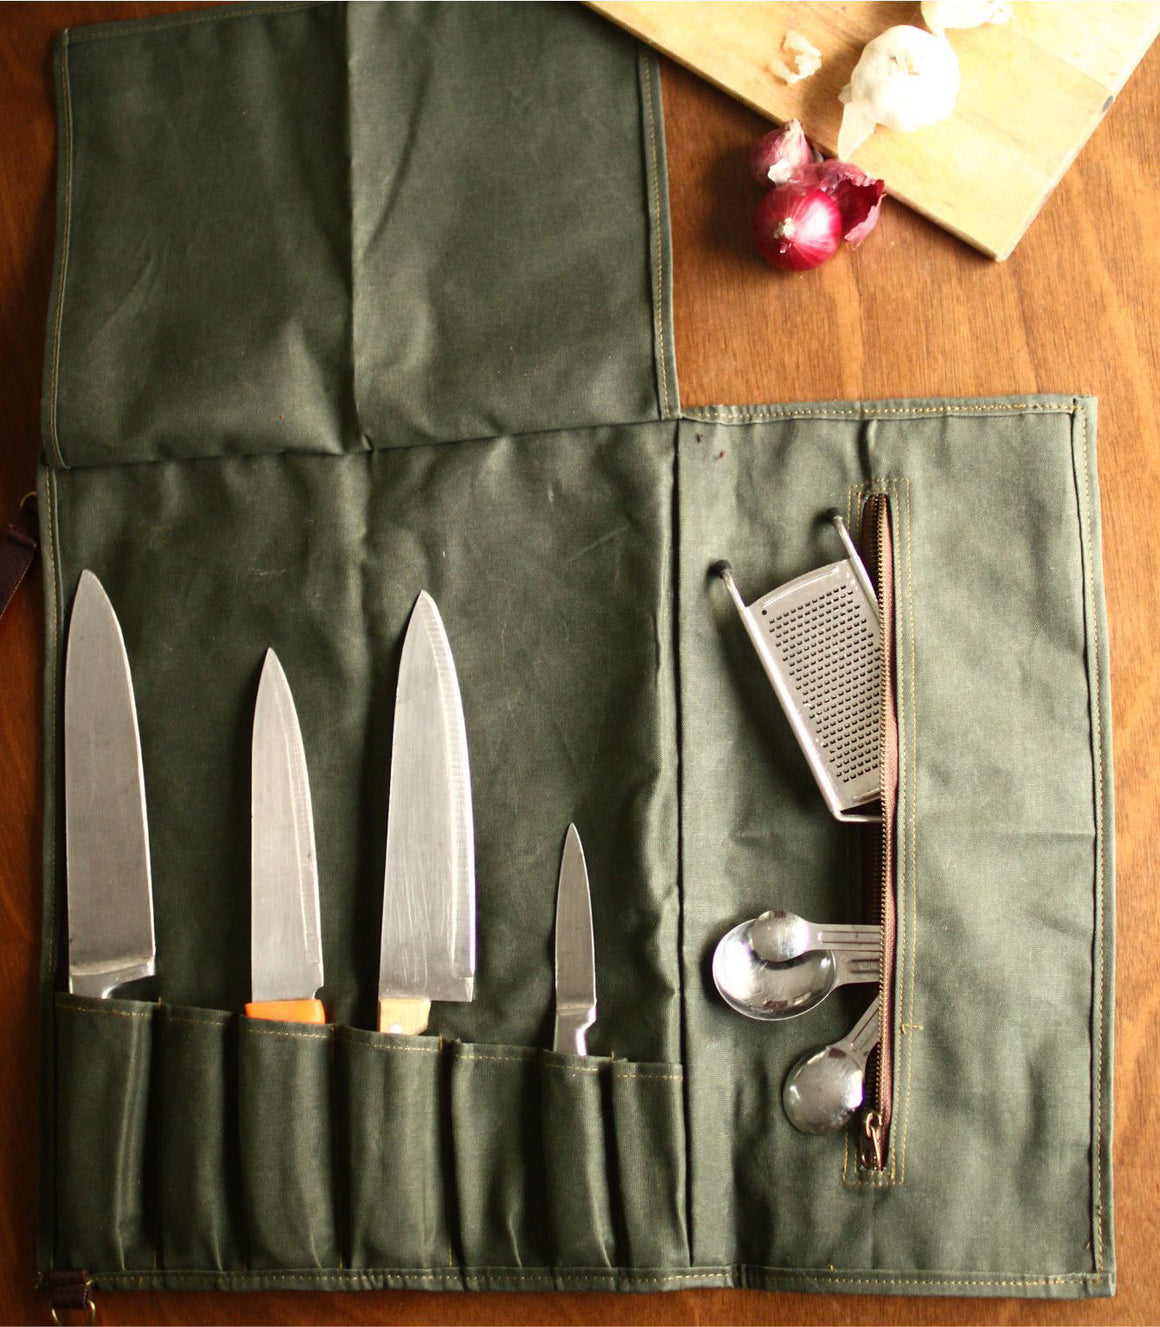 Gouache Waxed Canvas - Tool Rool Kit in Green